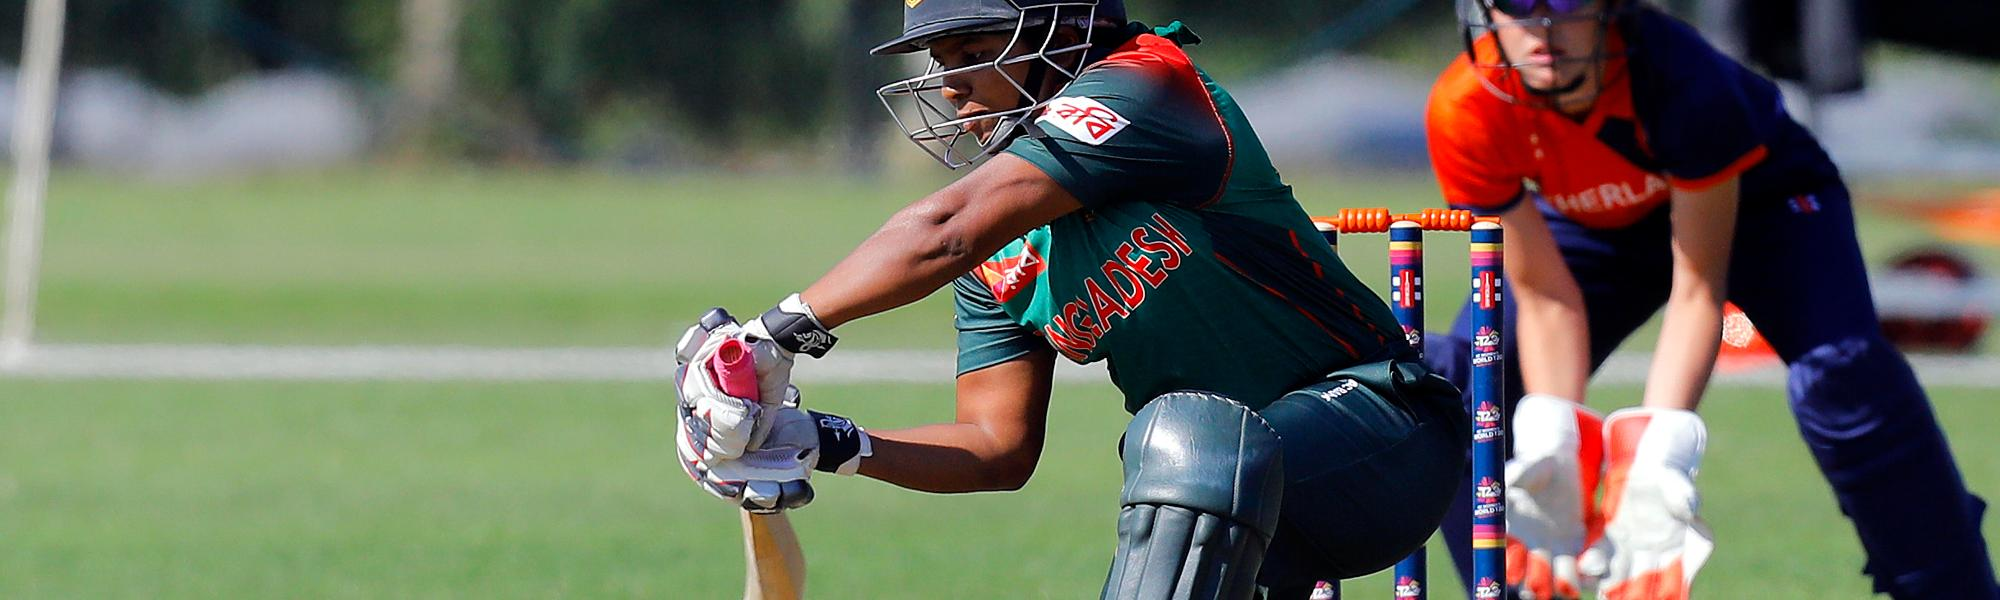 Match 7: Bangladesh Batsman Shamima Sultana plays a shot, Netherlands Women v Bangladesh Women, Group B, ICC Women's World Twenty20 Qualifier at Utrecht, 8th July 2018.